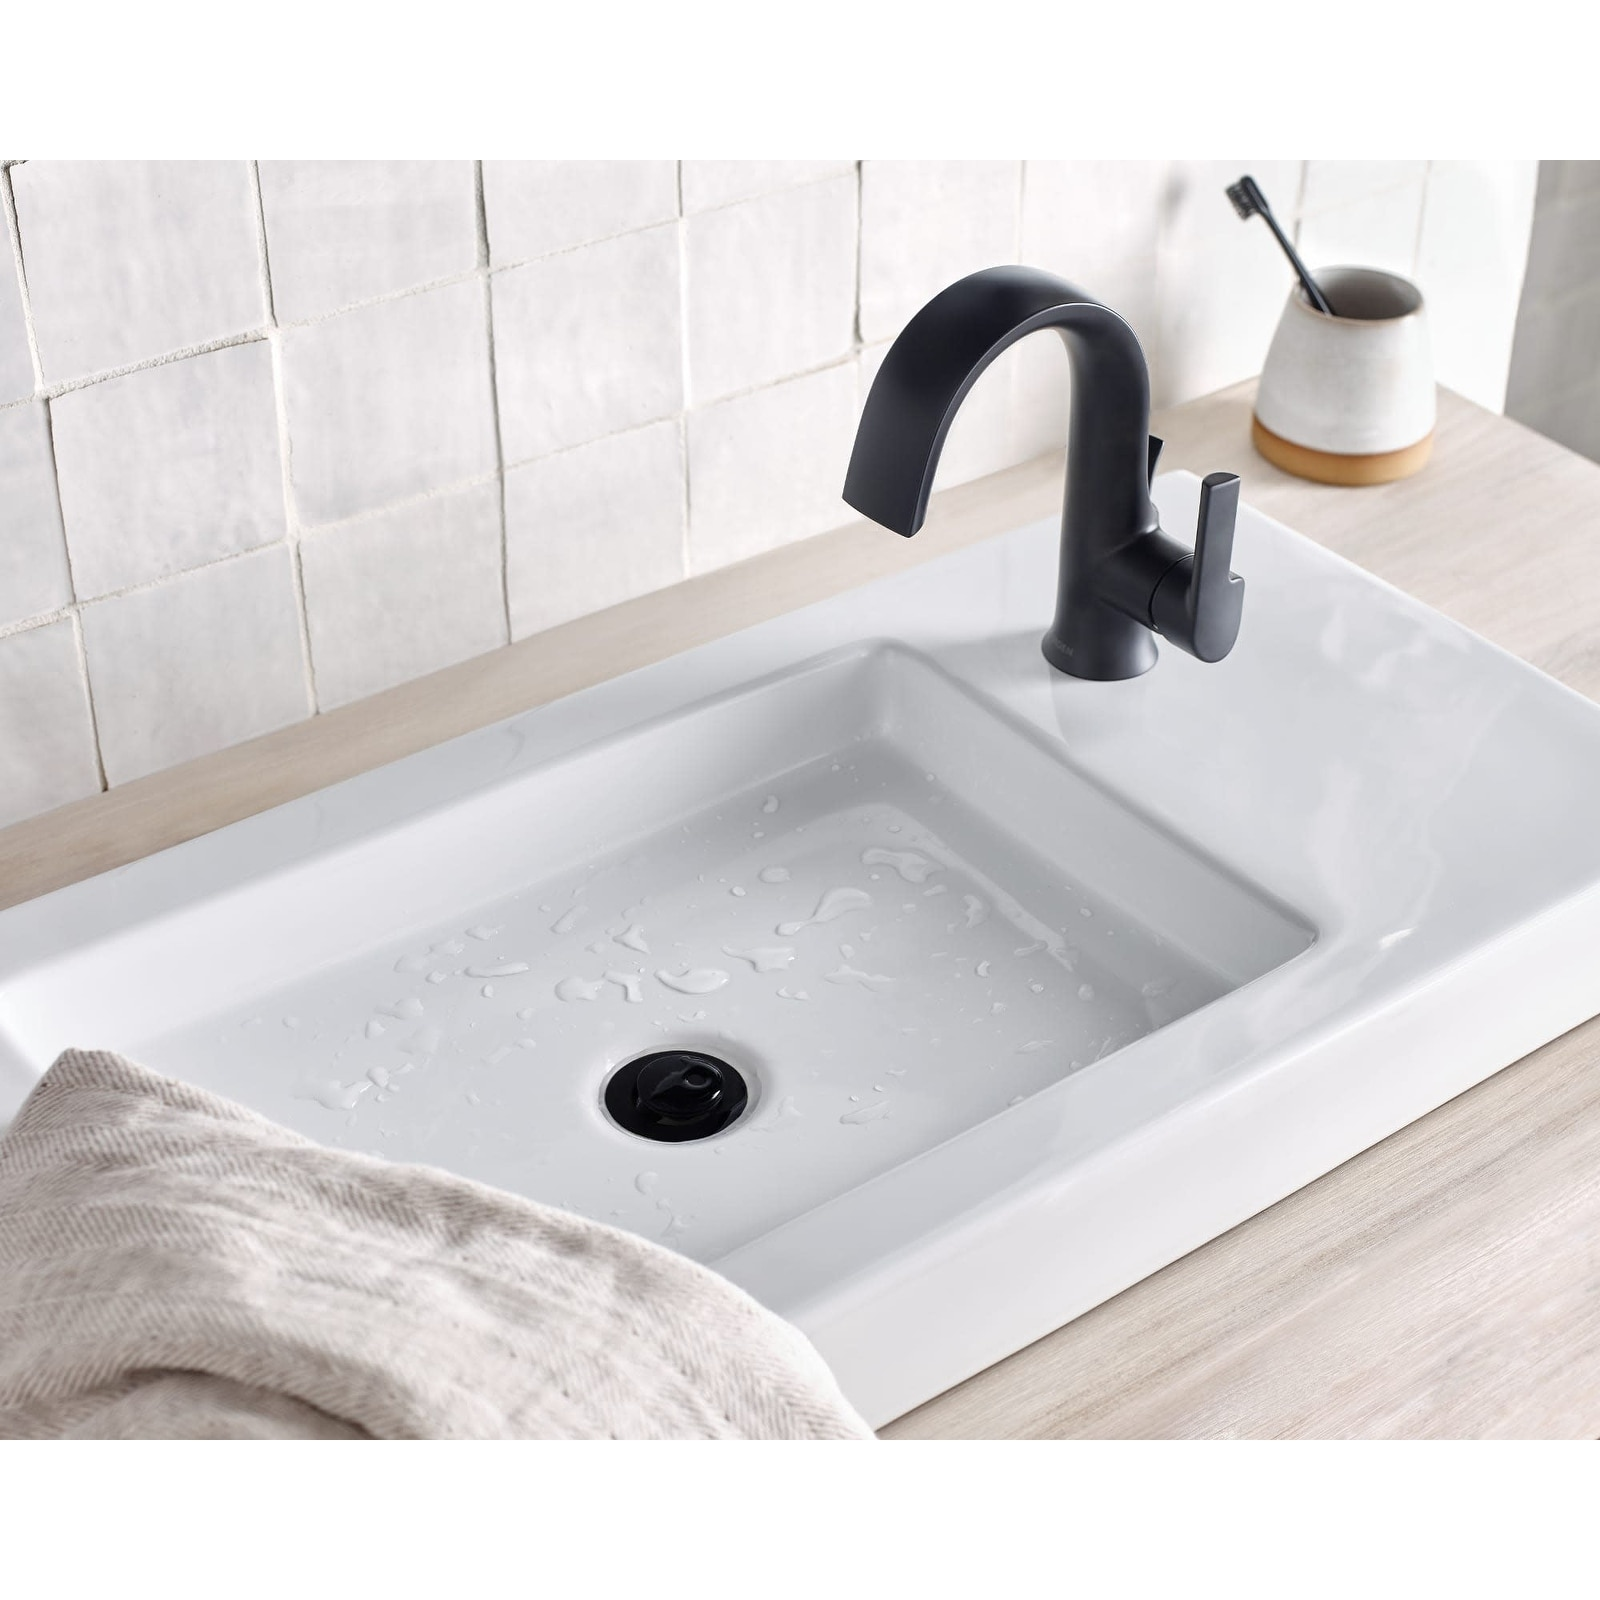 Moen S6910 Doux 1 2 Gpm Single Hole Bathroom Faucet With Pop Up Drain On Sale Overstock 25655801